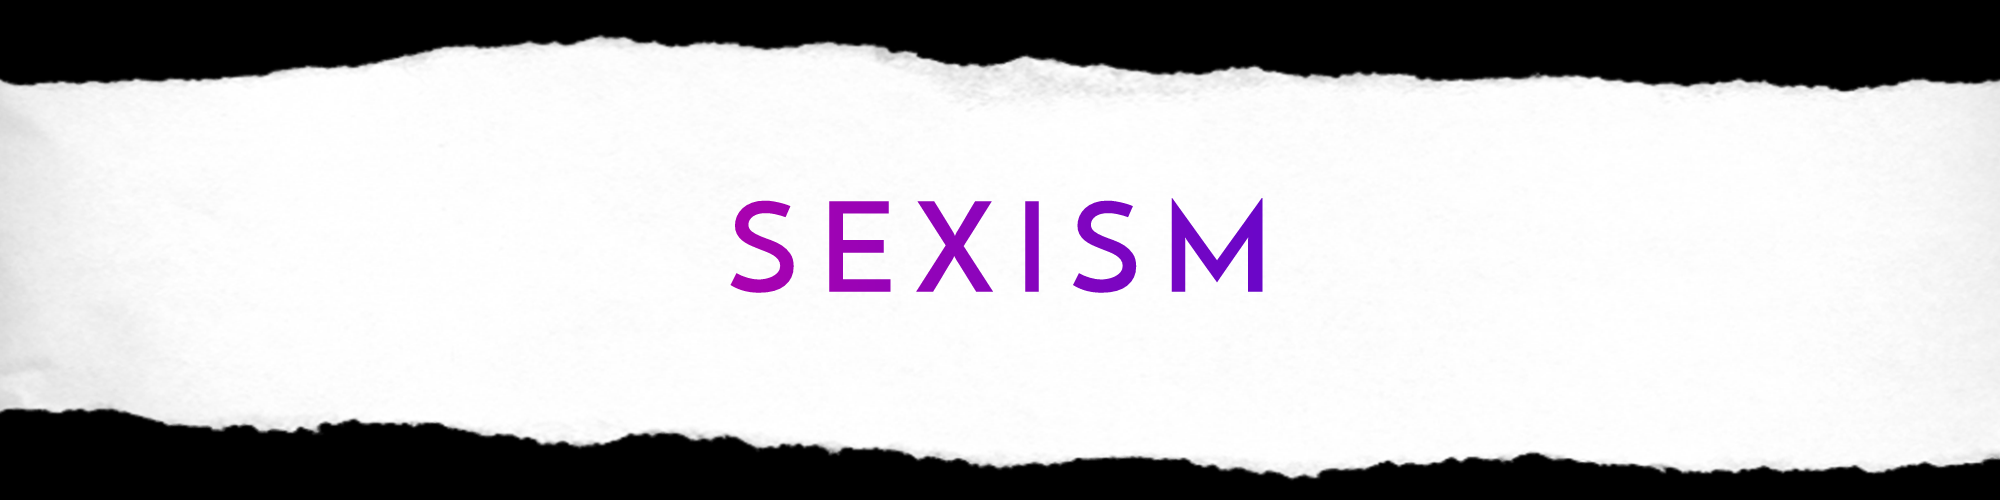 Sexism Banner.png